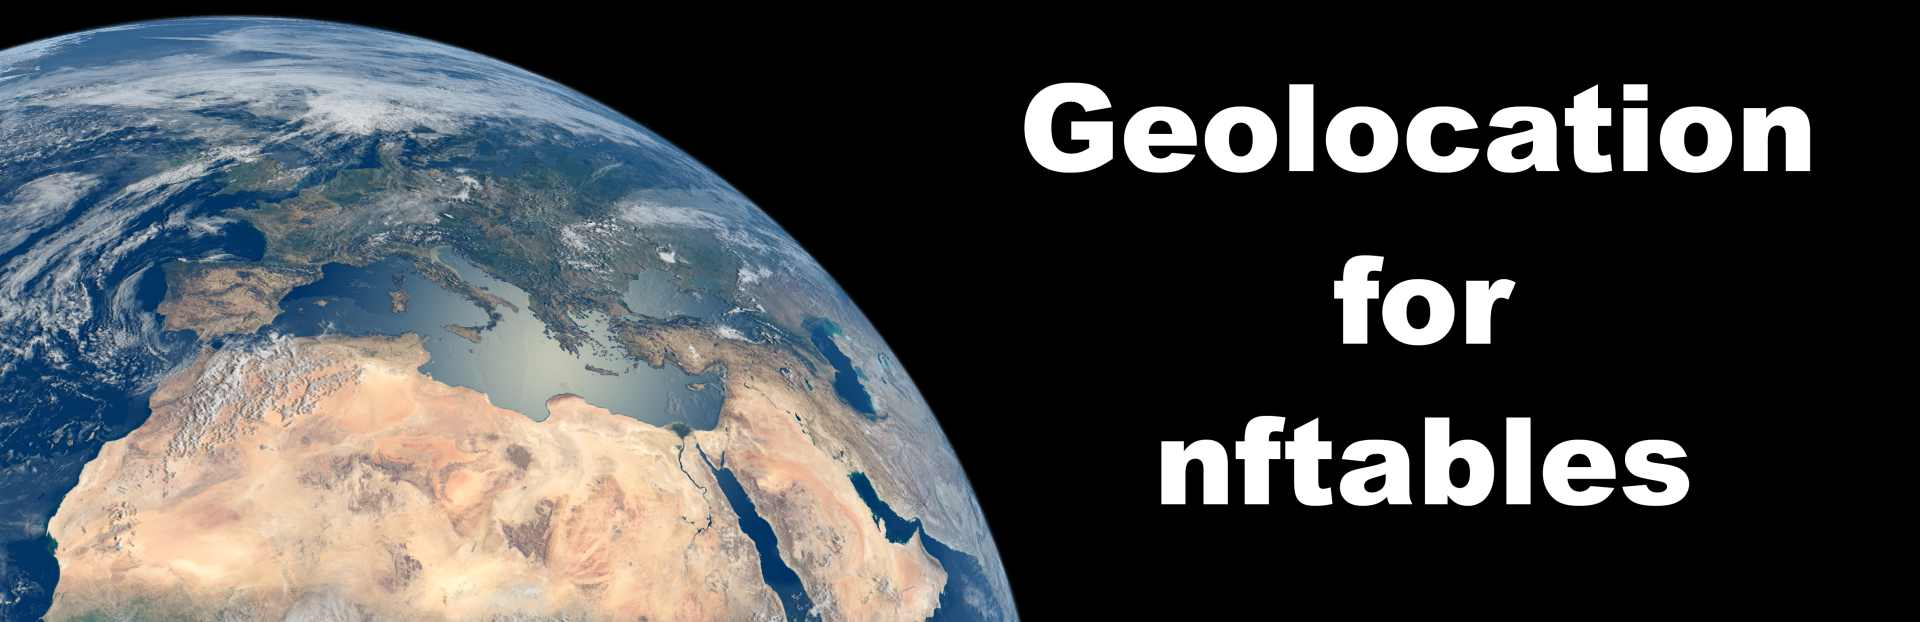 Geolocation for nftables